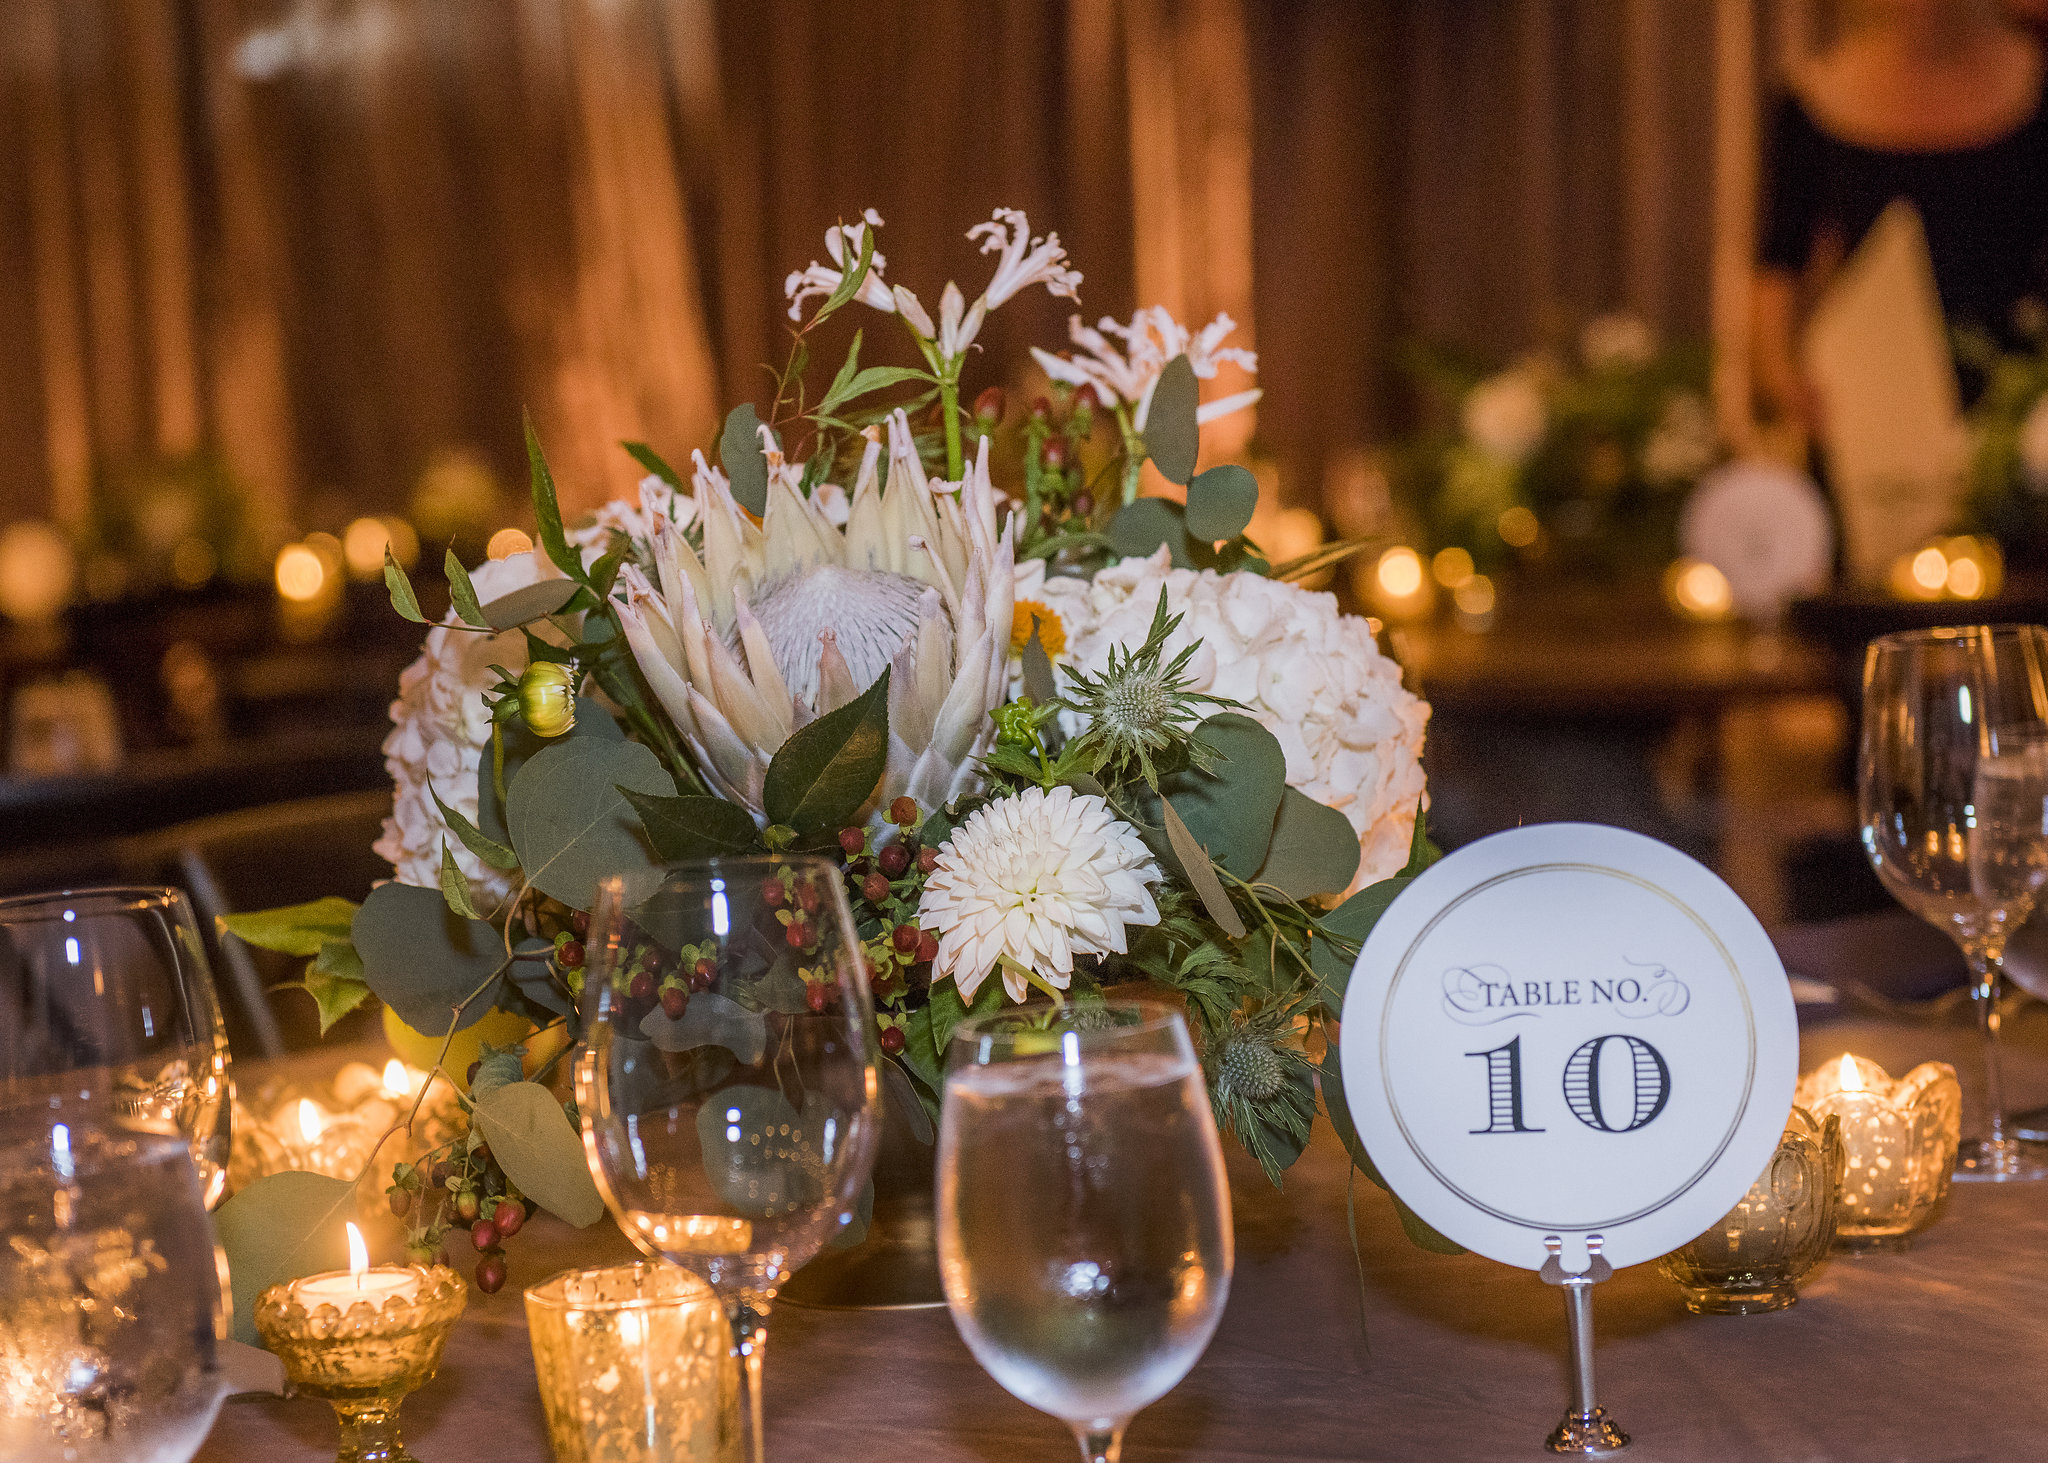 www.santabarbarawedding.com | Willa Kveta Photography | The Prop House Lounge and Warehouse | Reception Table Numbers